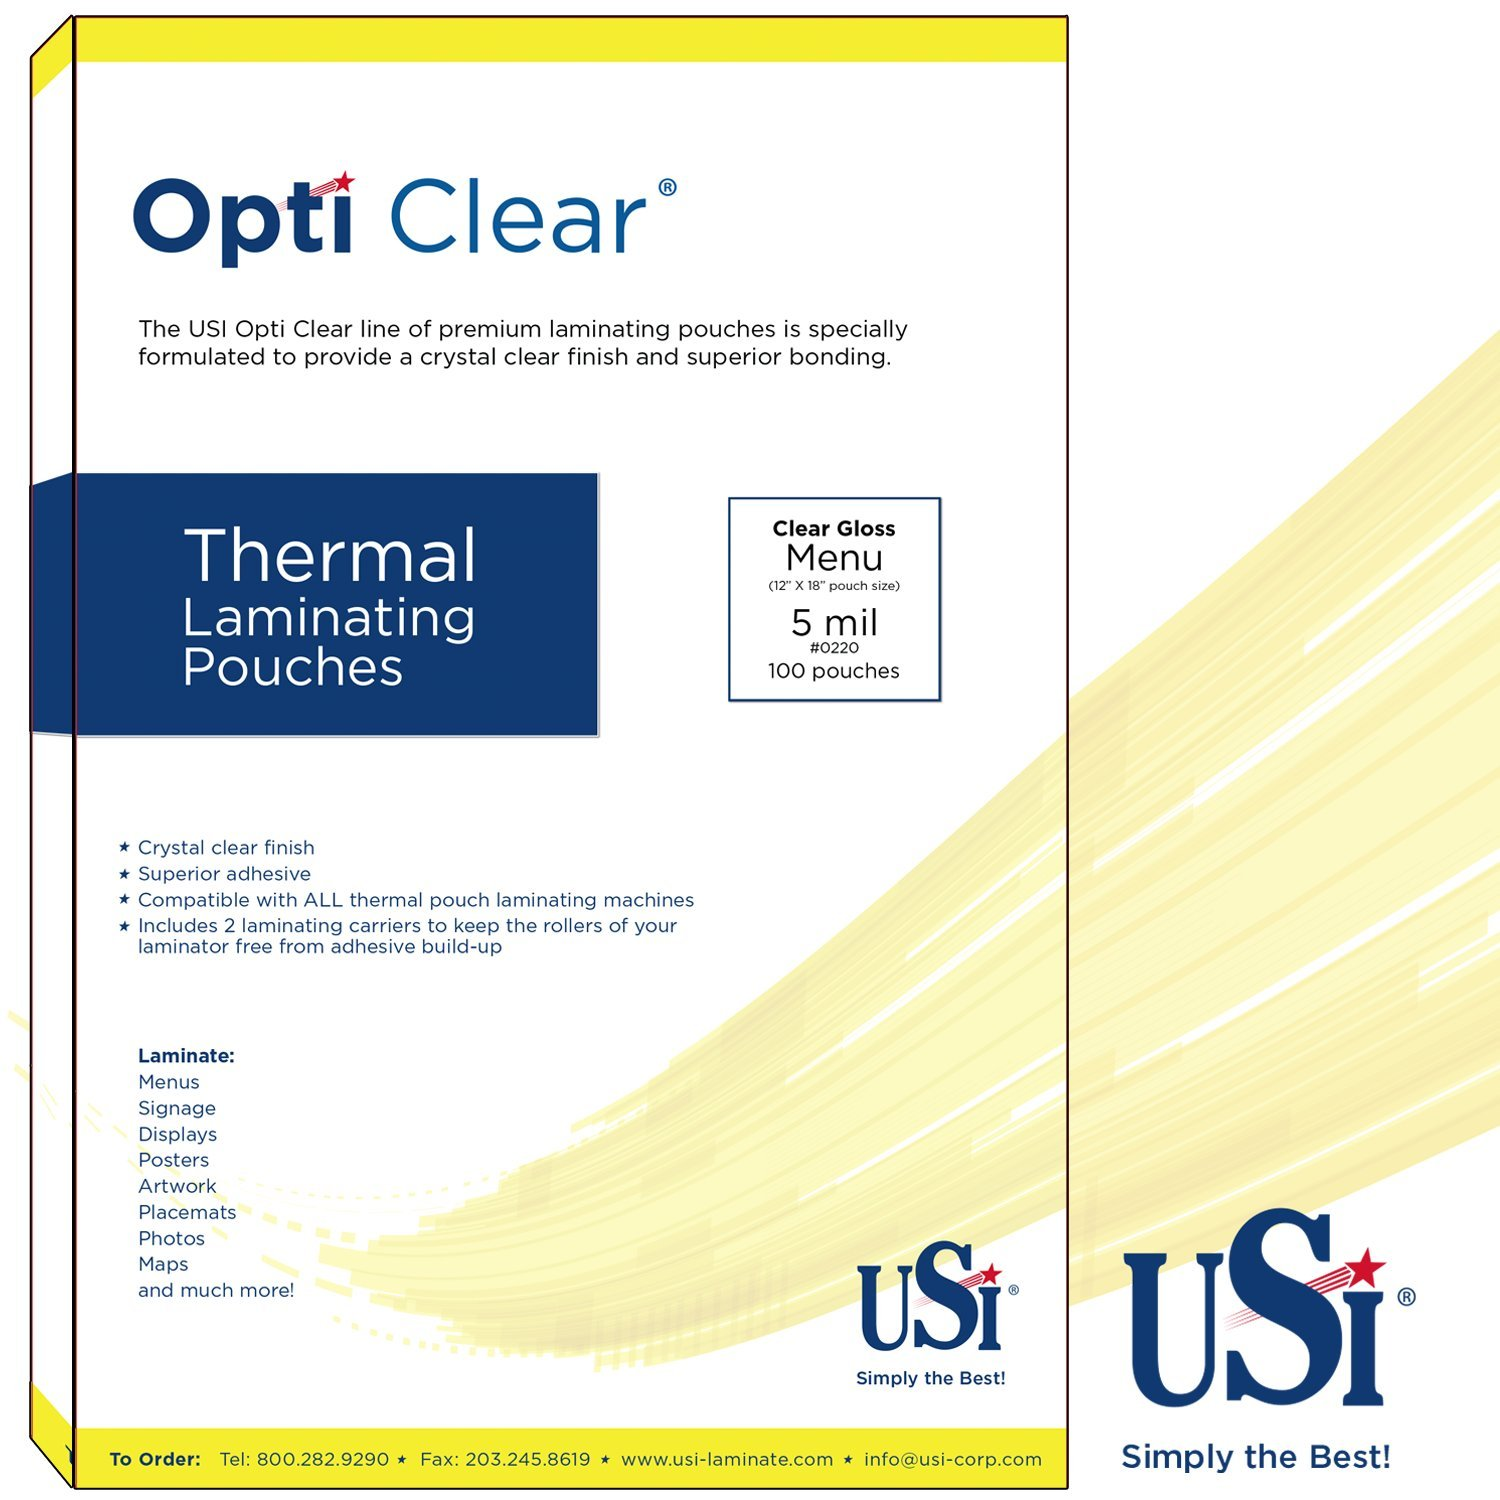 USI Opti Clear Premium Thermal (Hot) Laminating Pouches/Sheets, Menu Size, 5 Mil, 12 x 18 Inches, Clear Gloss, Pack of 200